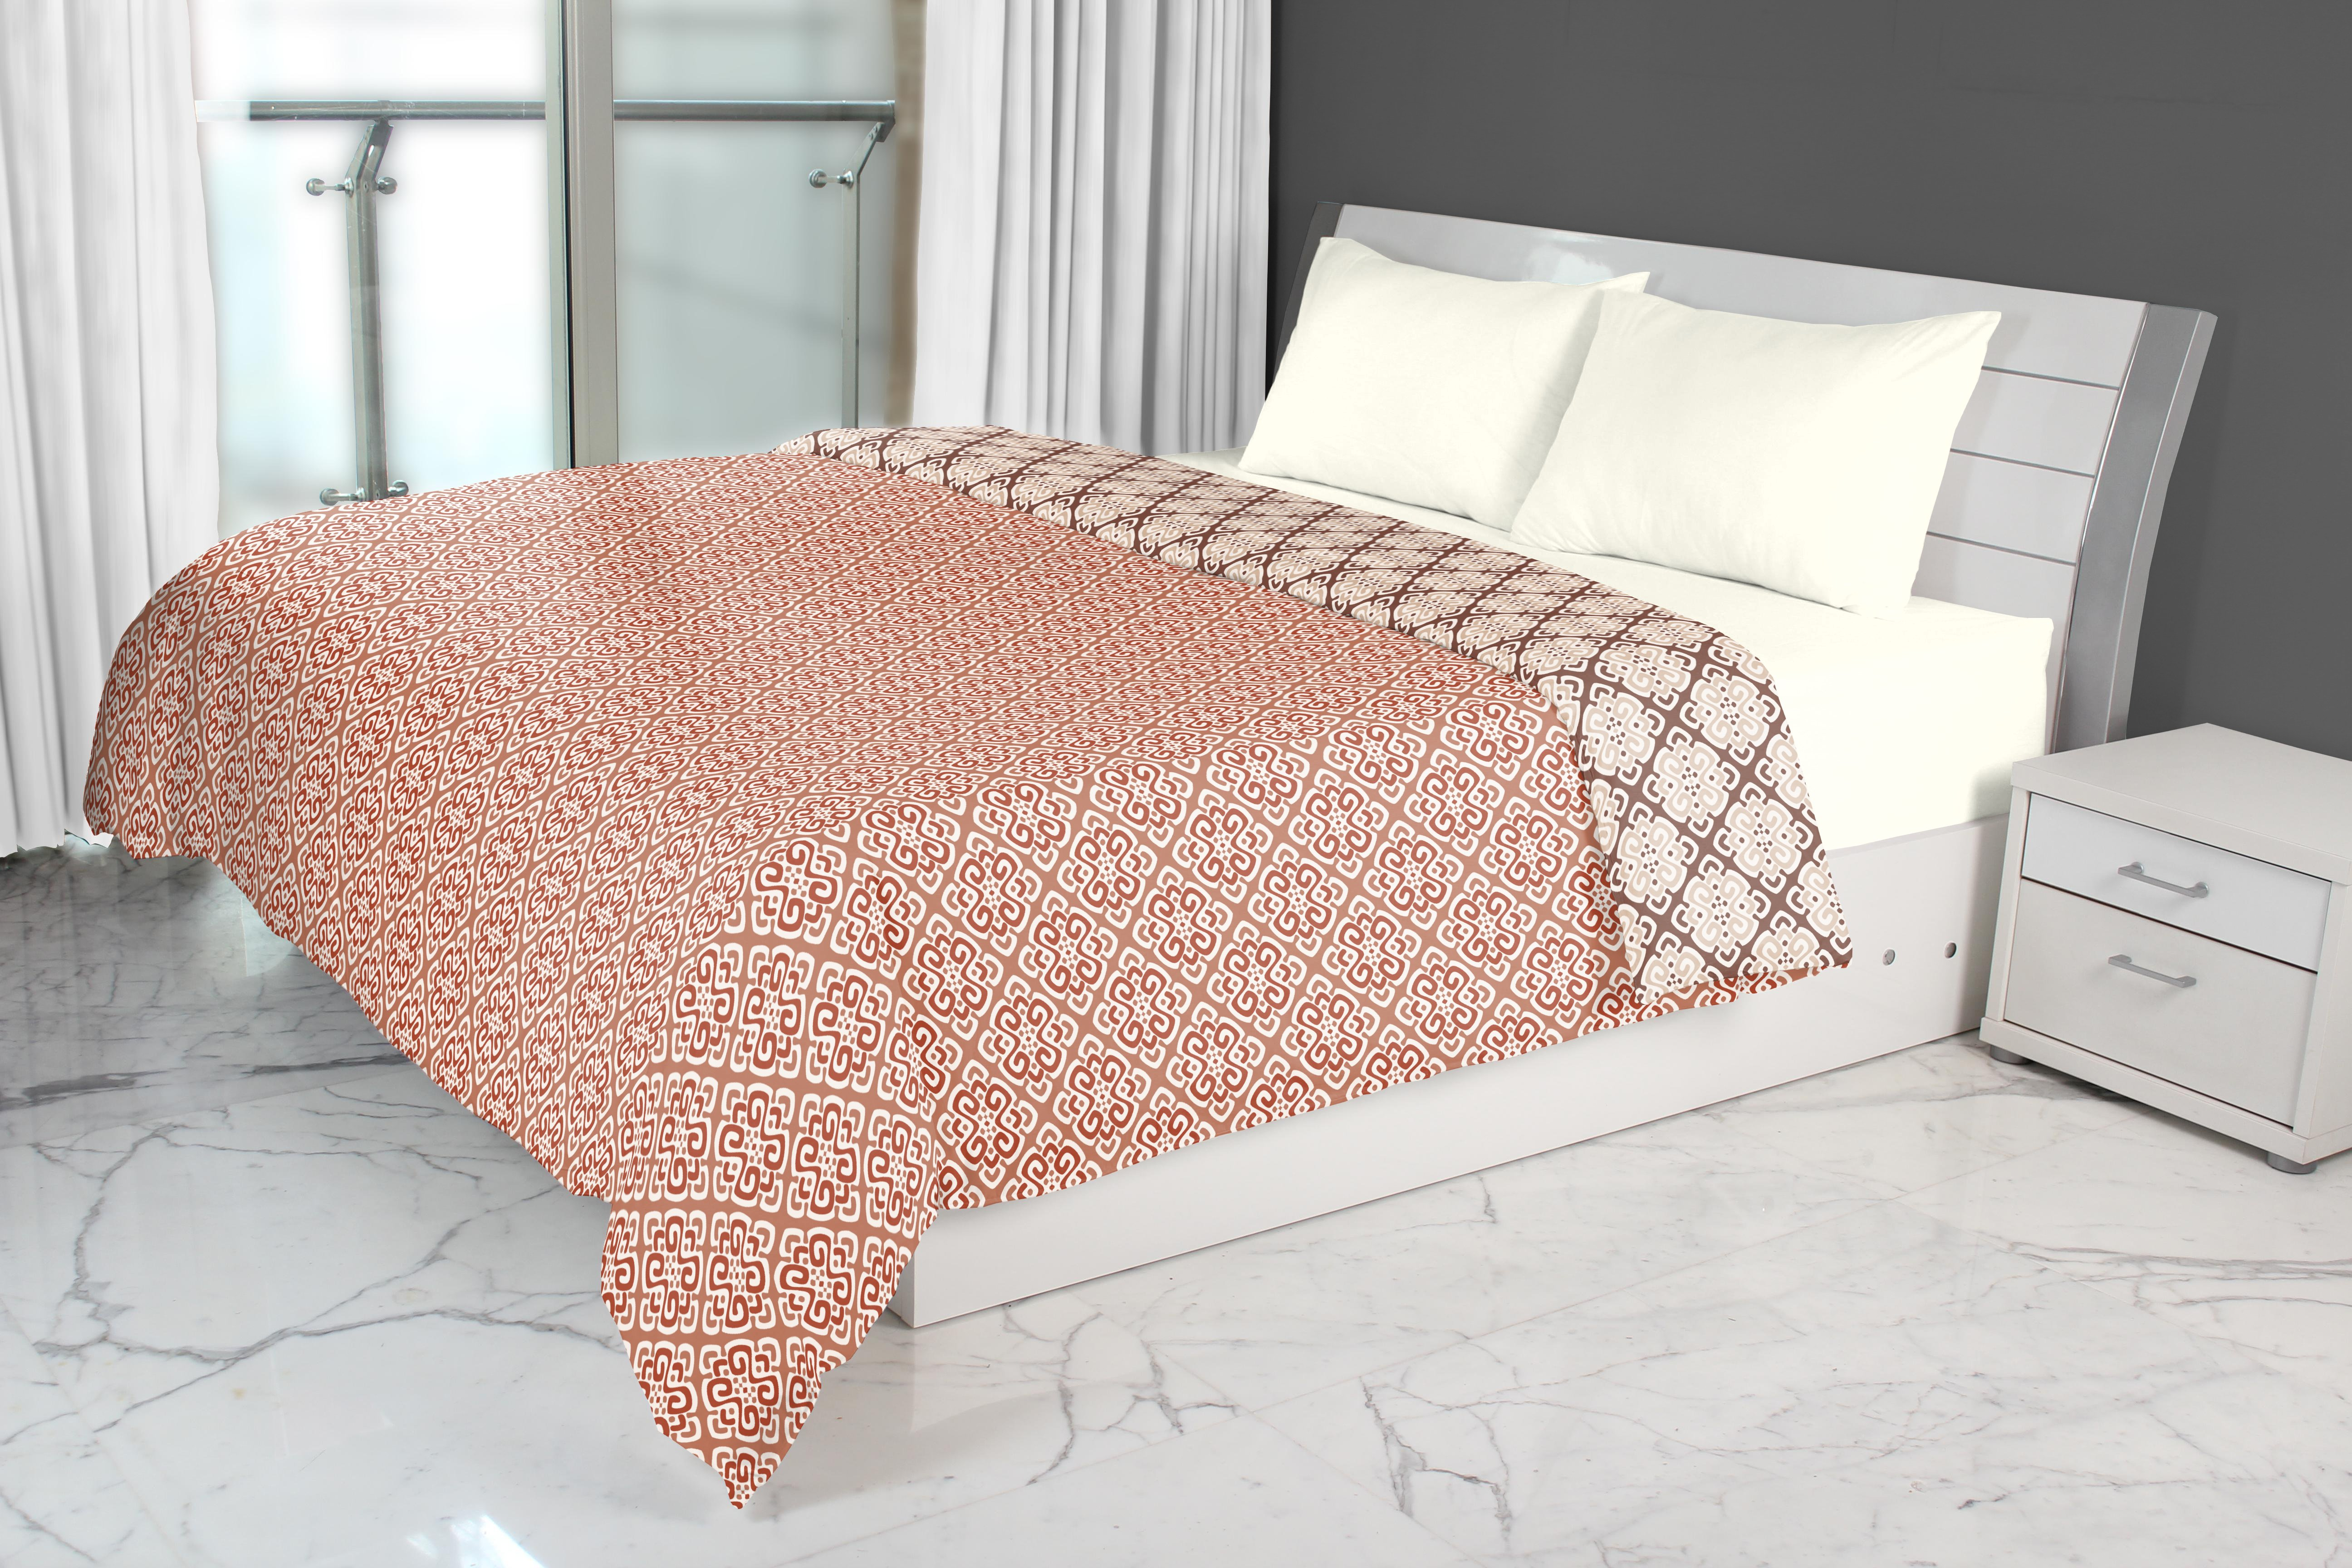 Emilia Cotton Dohars in Rust Brown Colour by Living Essence